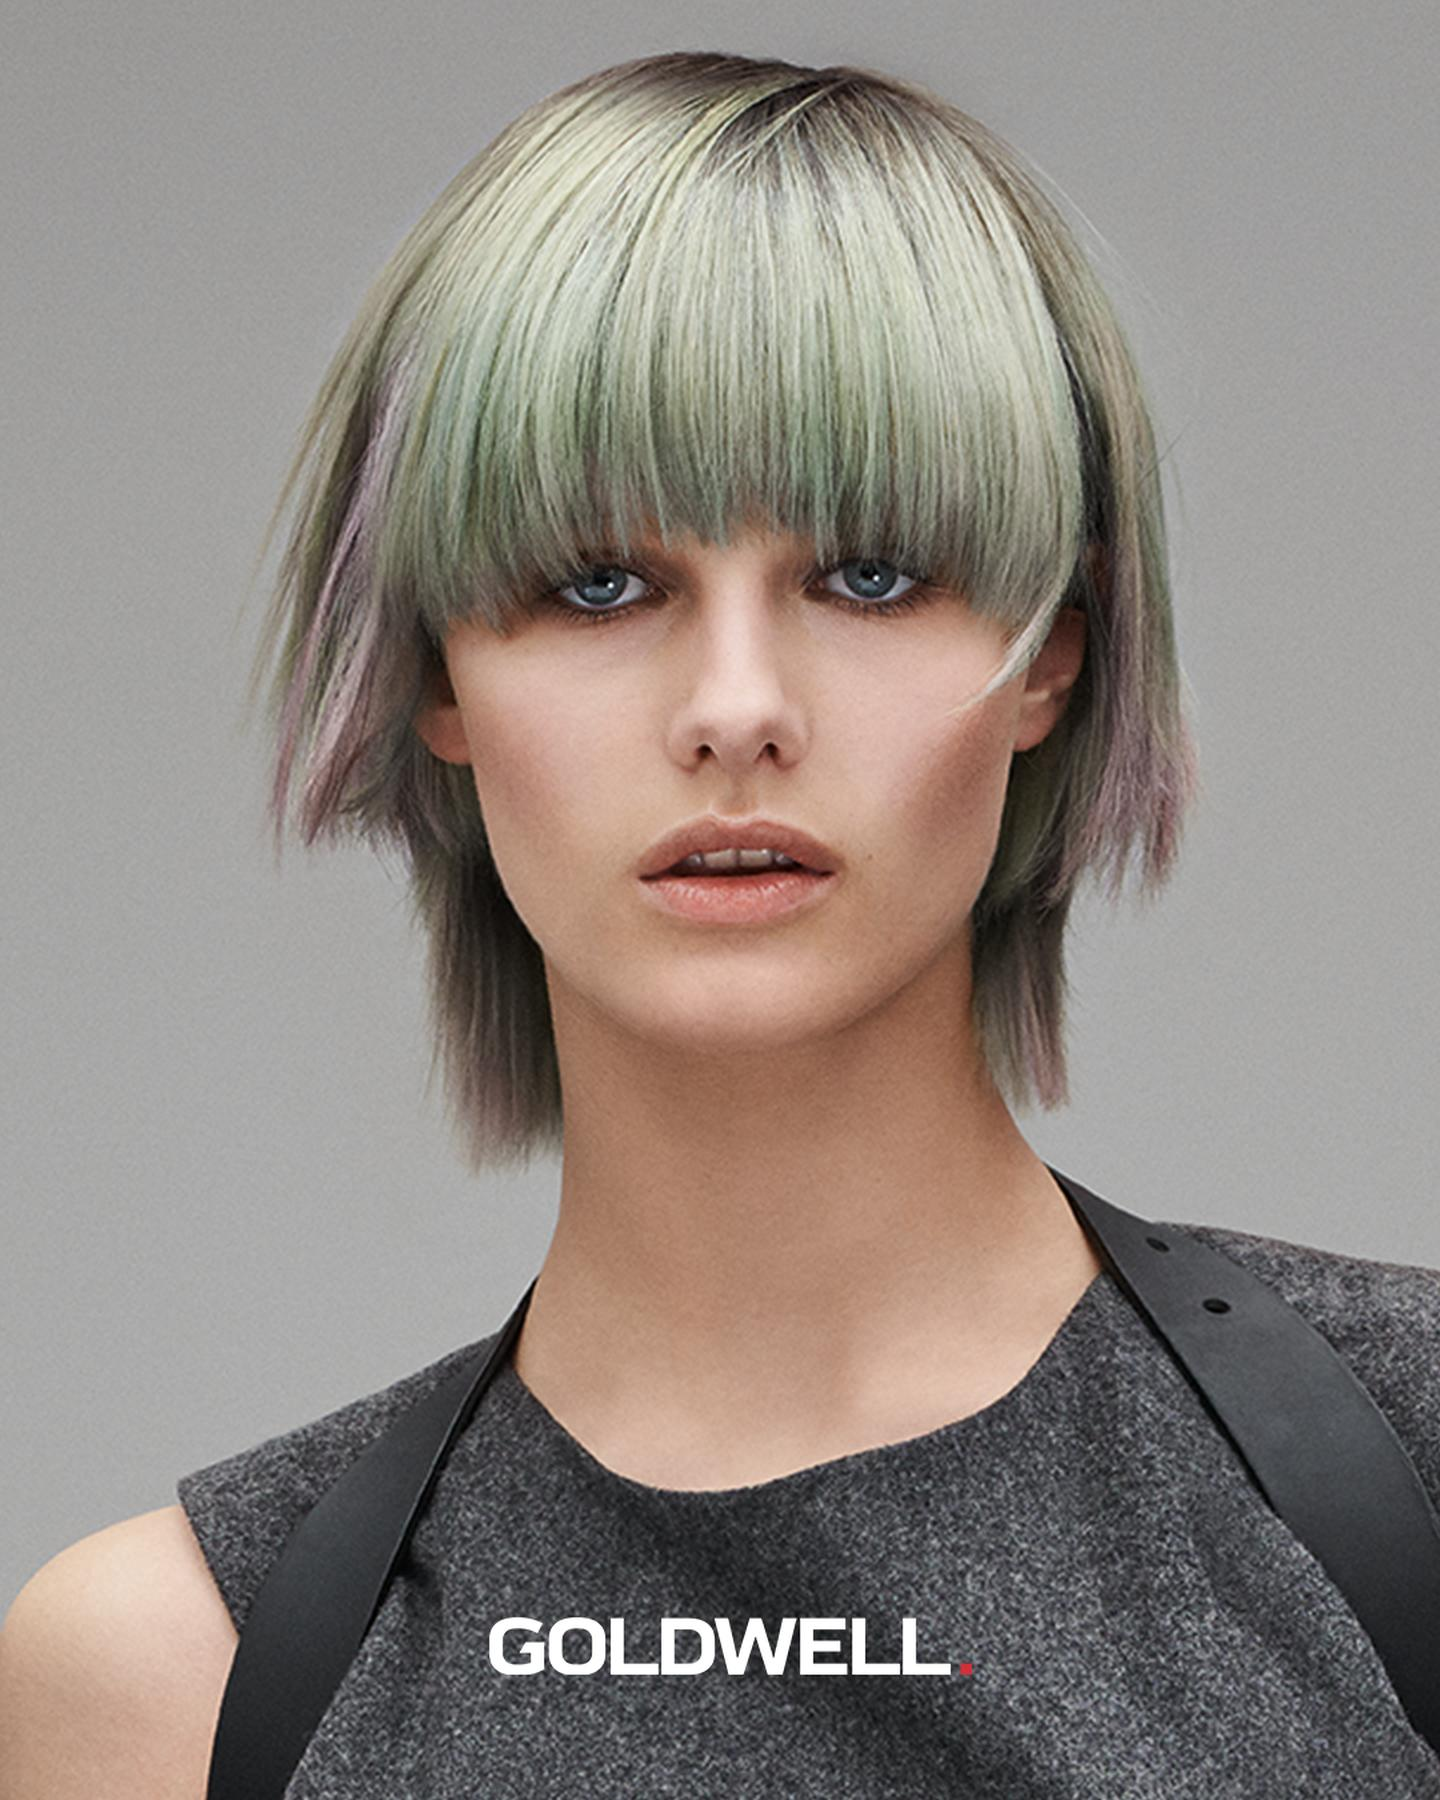 Goldwell Couture Collection Intrepid Beauties